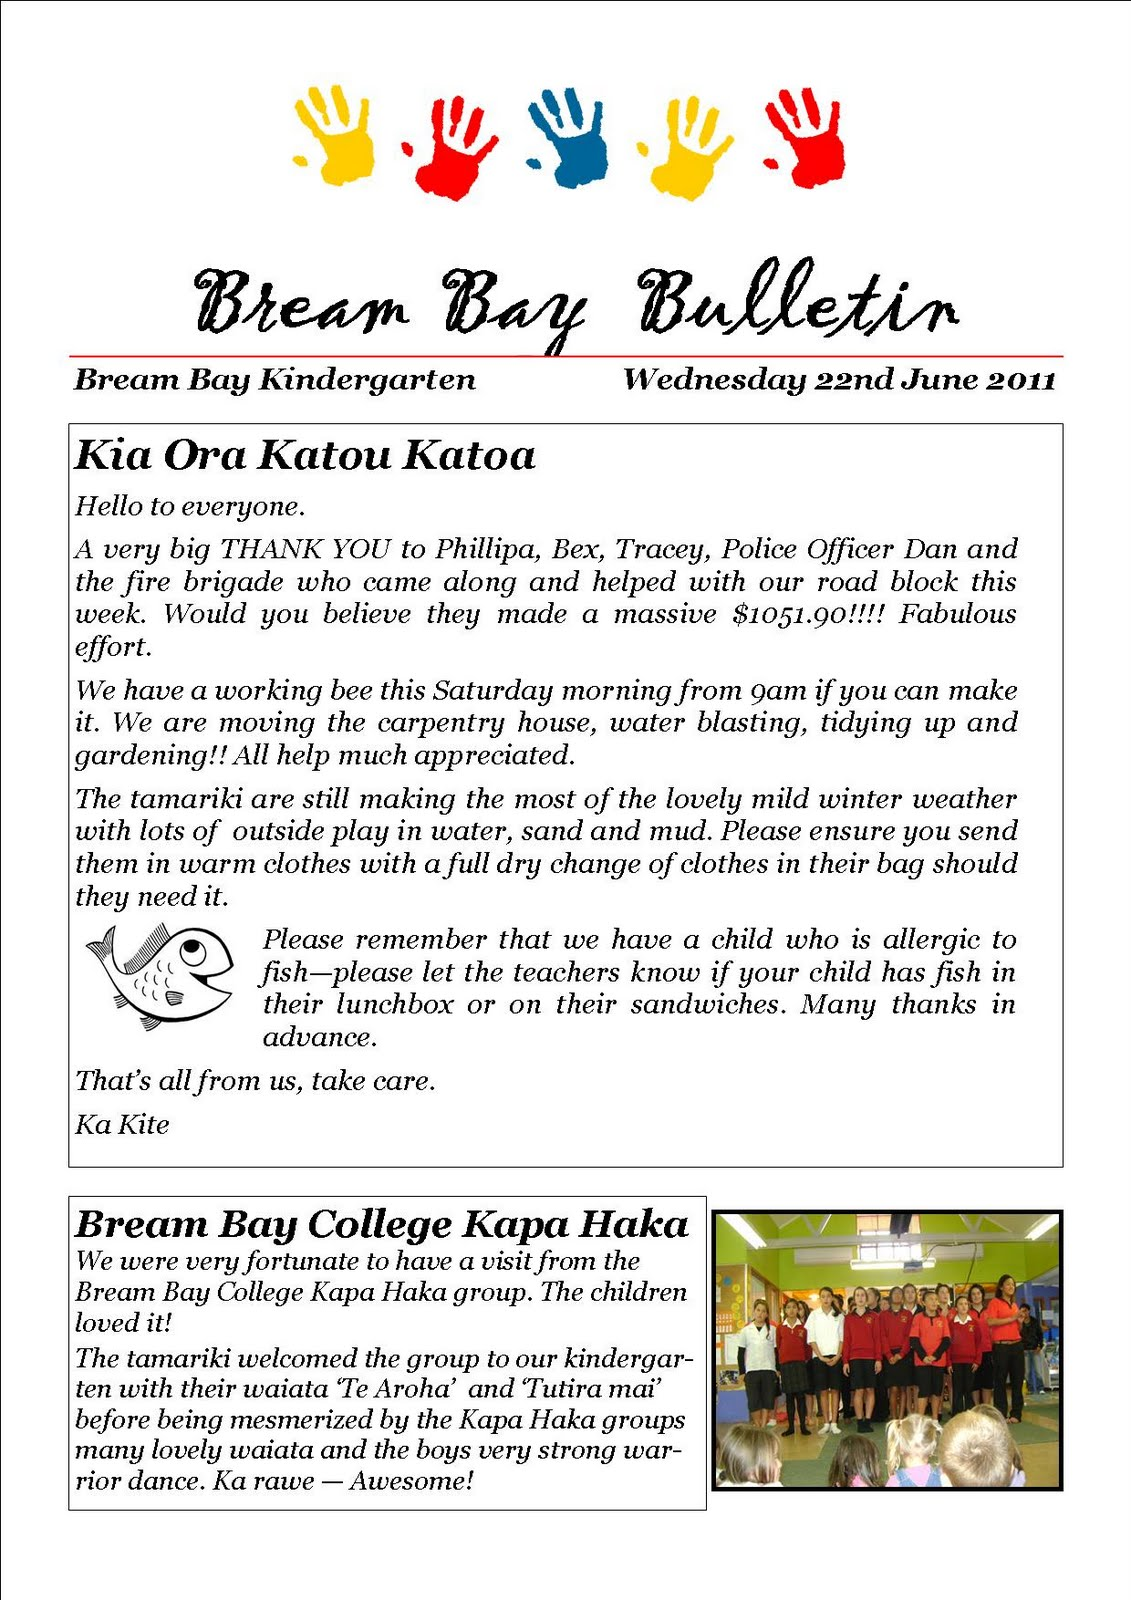 BLOGNewsletter%2BBBK%2BBulletin%2BJune%2B2011 October Newsletter Template on lds relief society, free downloadable preschool, employee free word, printable downloadable,